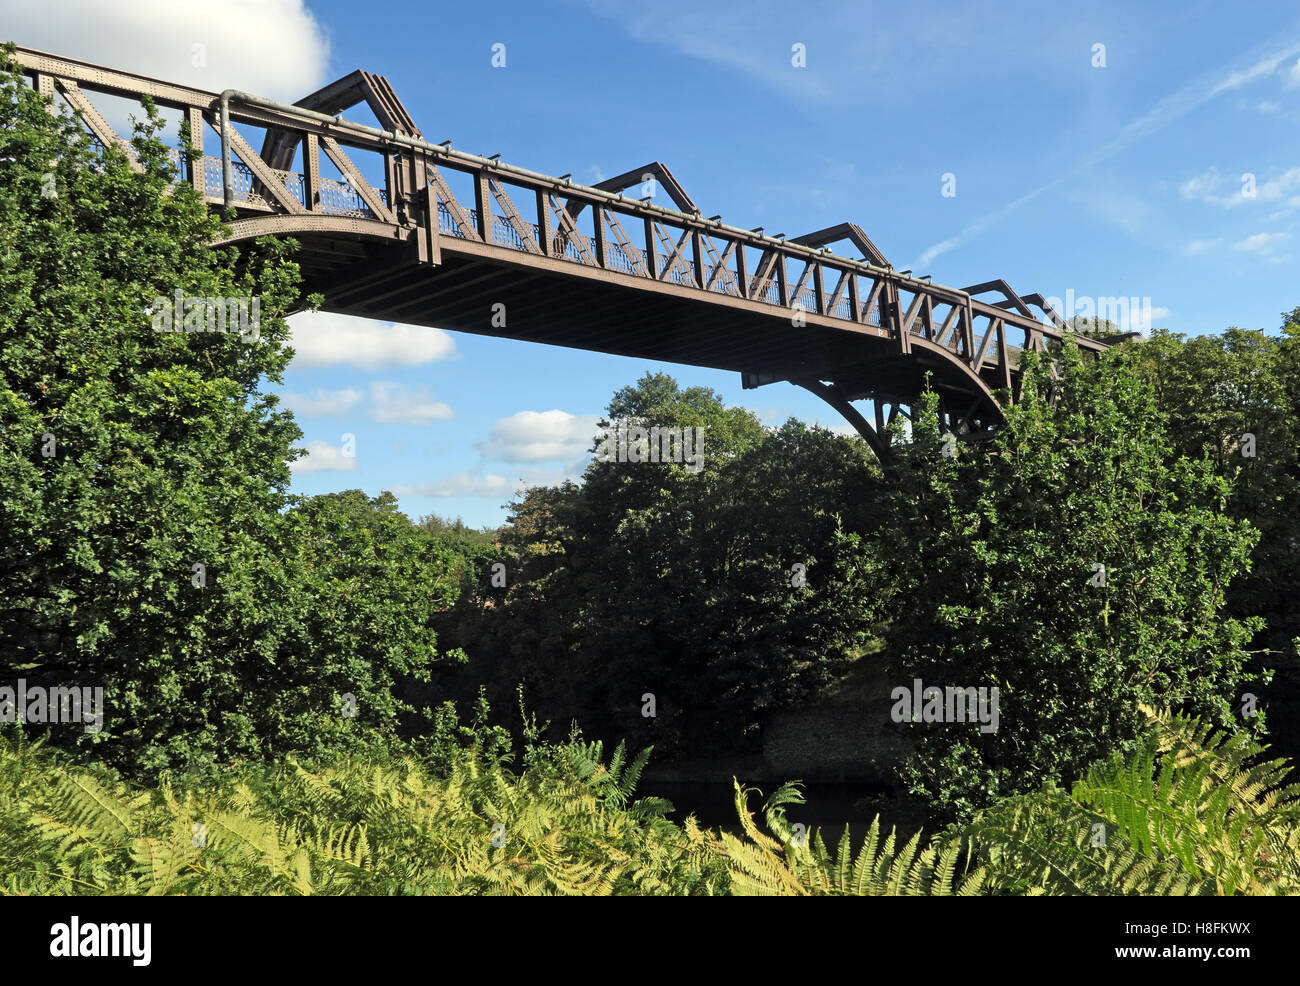 High,level,summer,spring,metal,steel,iron,frame,framework,Ackers,ln,lane,rd,road,park,MSCC,repairs,maintenance,TPT,trans,pennine,trail,High level Bridge,Ackers Road,Ackers Rd,Cantilever Park,Cantilever Bridge,Cantilever Bridges,Manchester Ship Canal,Peel Ports,Trans Pennine Trail,GoTonySmith,@HotpixUK,Tony,Smith,UK,GB,Great,Britain,United,Kingdom,English,British,England,cycle,route,tree,trees,path,foliage,ferns,wide,across,Buy Pictures of,Buy Images Of,Images of,Stock Images,Tony Smith,United Kingdom,Great Britain,British Isles,Buy photo of,Transpennine Trail,Trans-pennine Trail